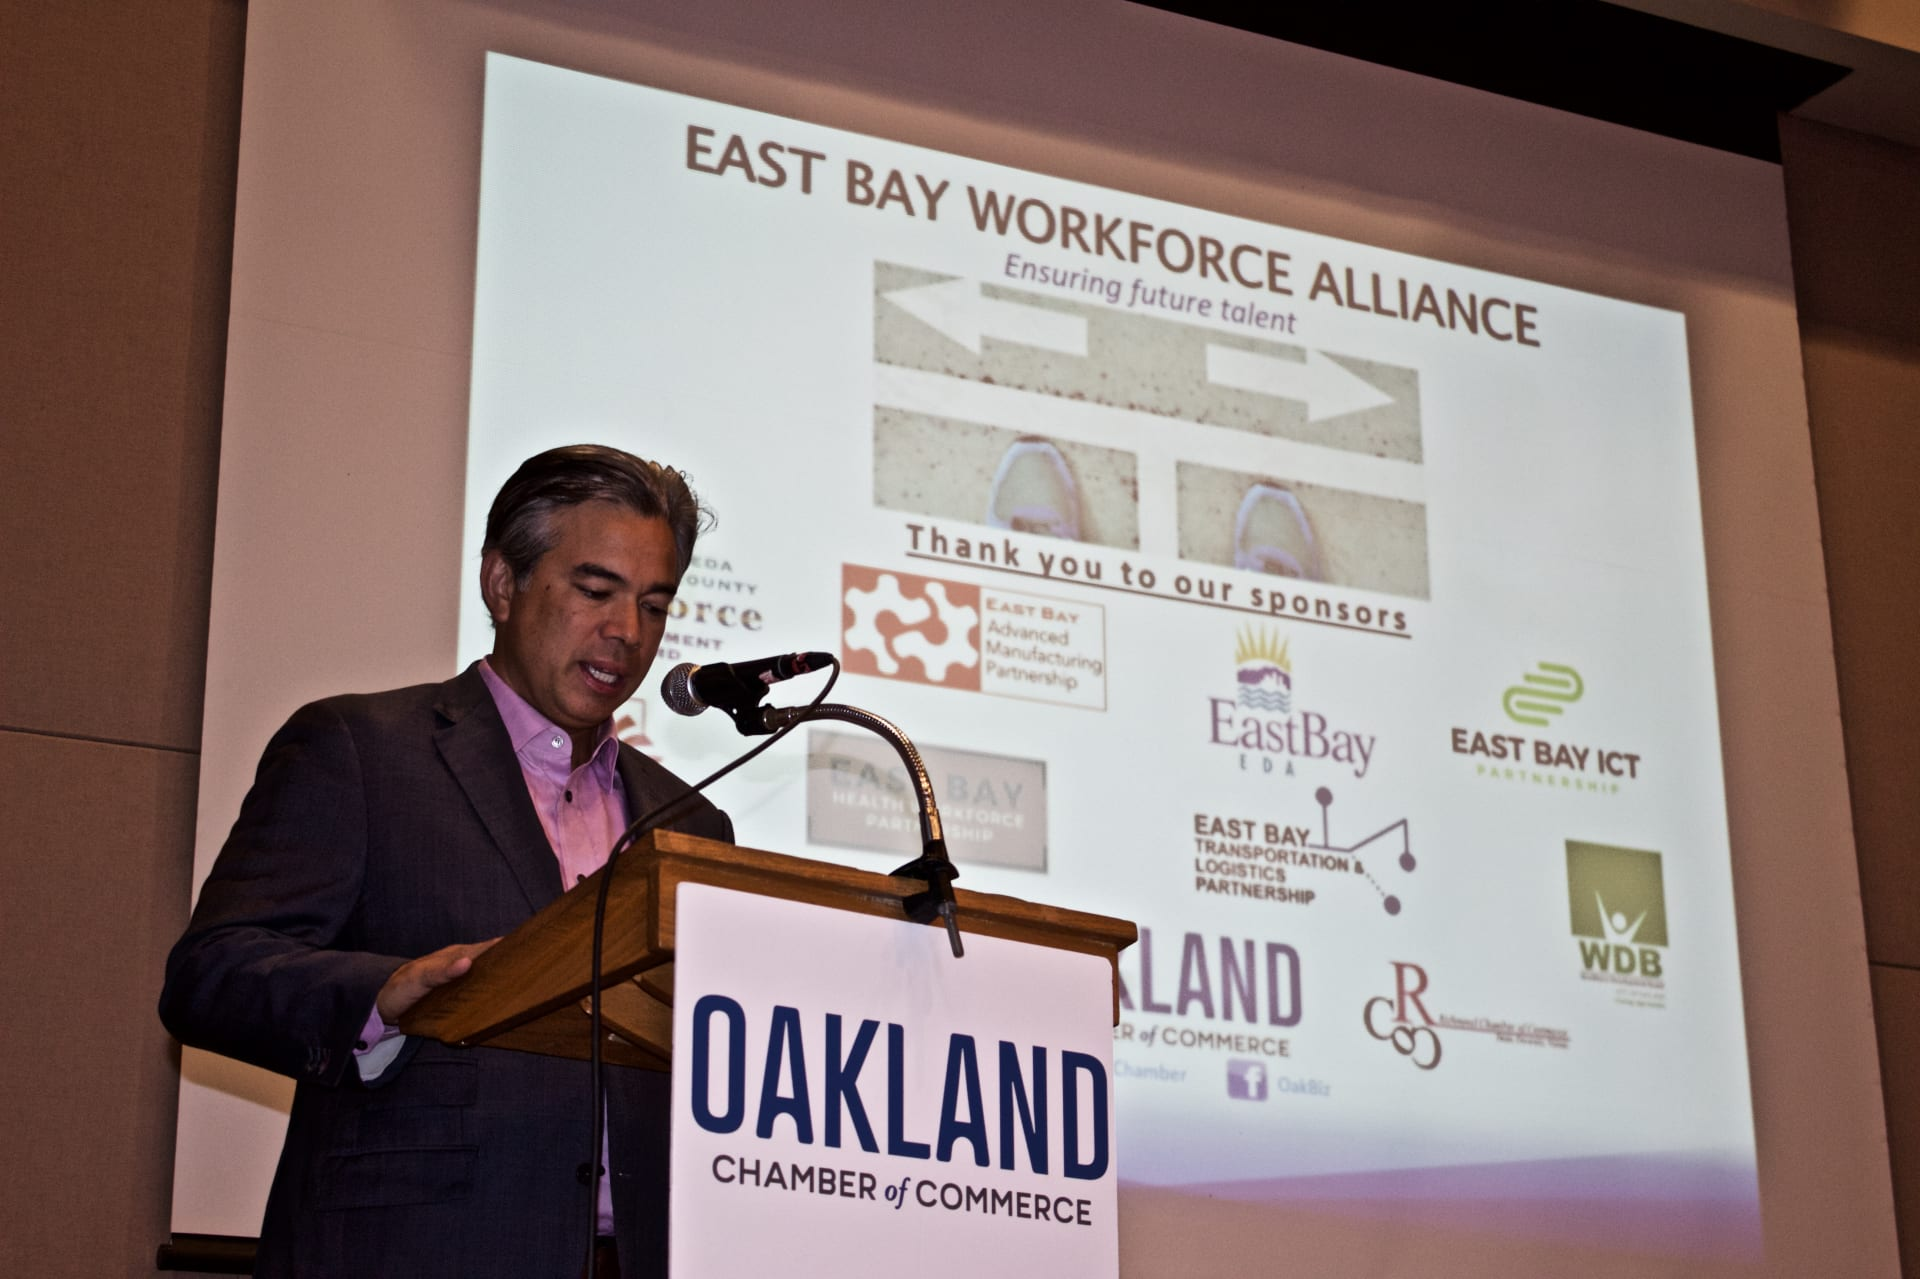 Rob-Bonta-East-Bay-Workforce.jpg